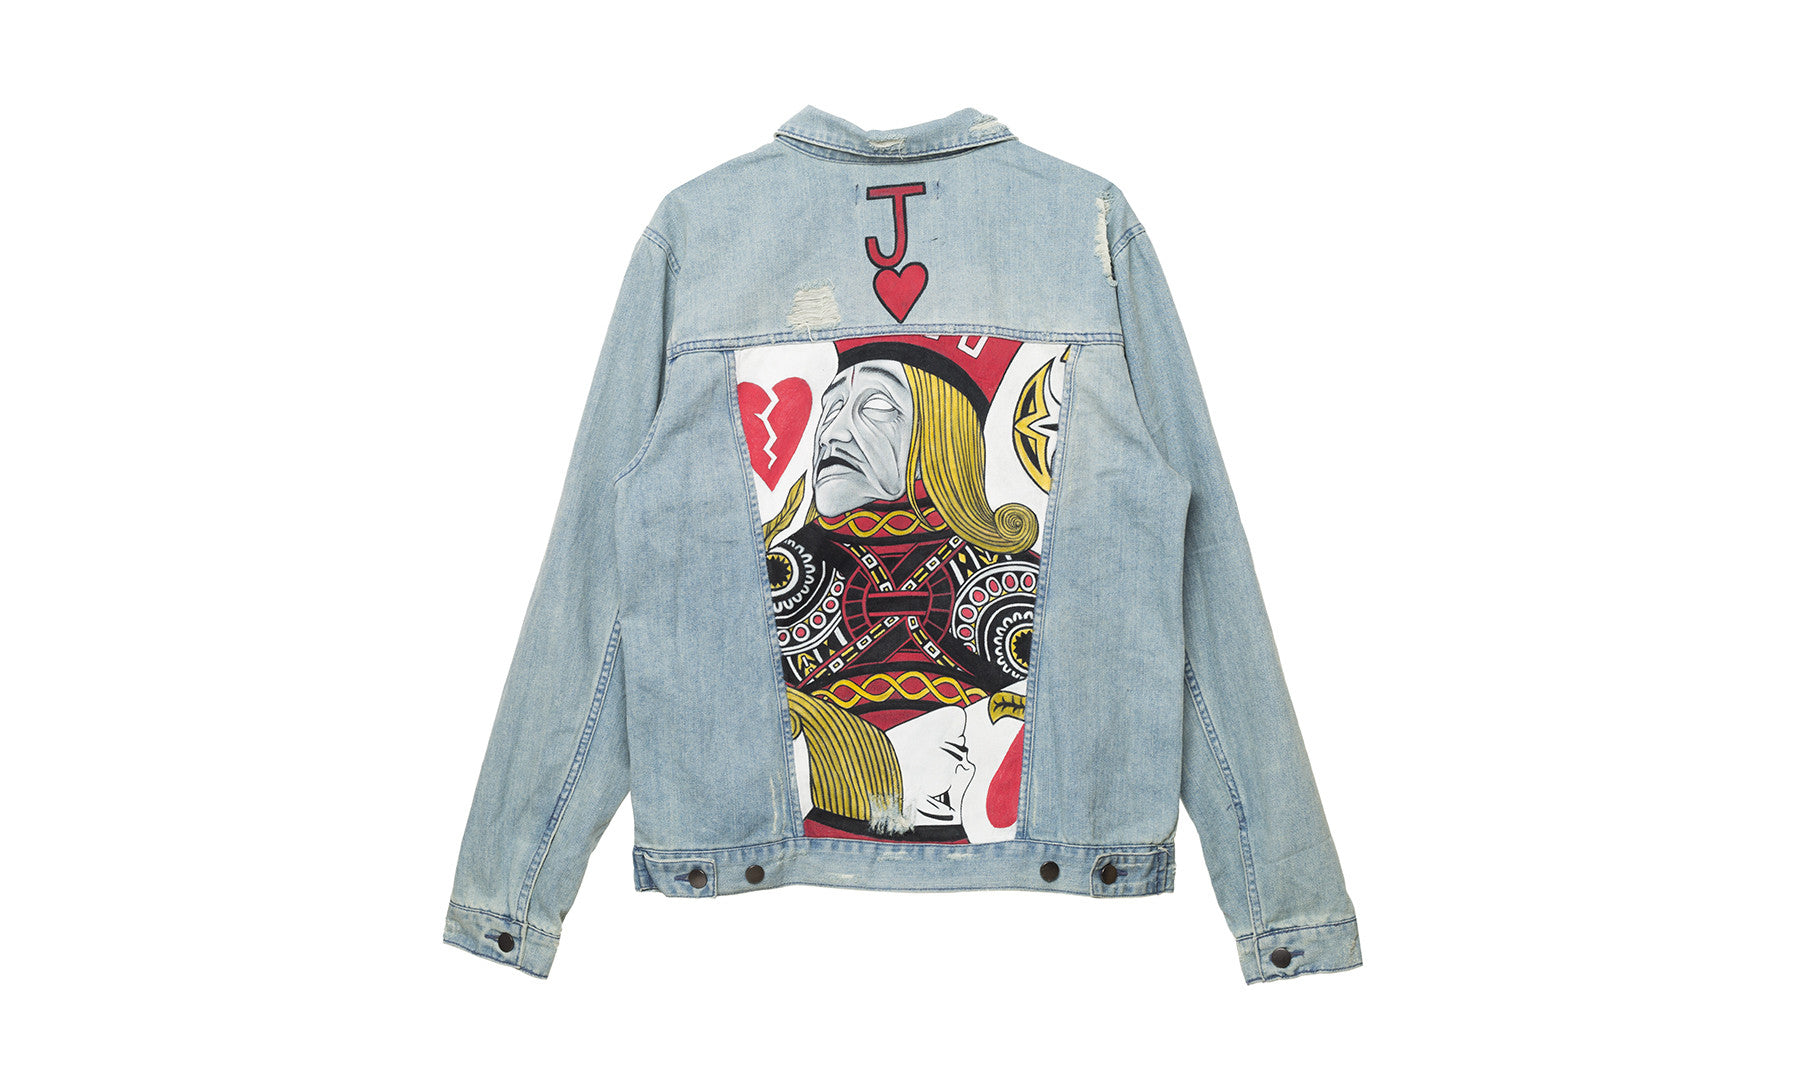 elwood clothing painted denim trucker jacket joker